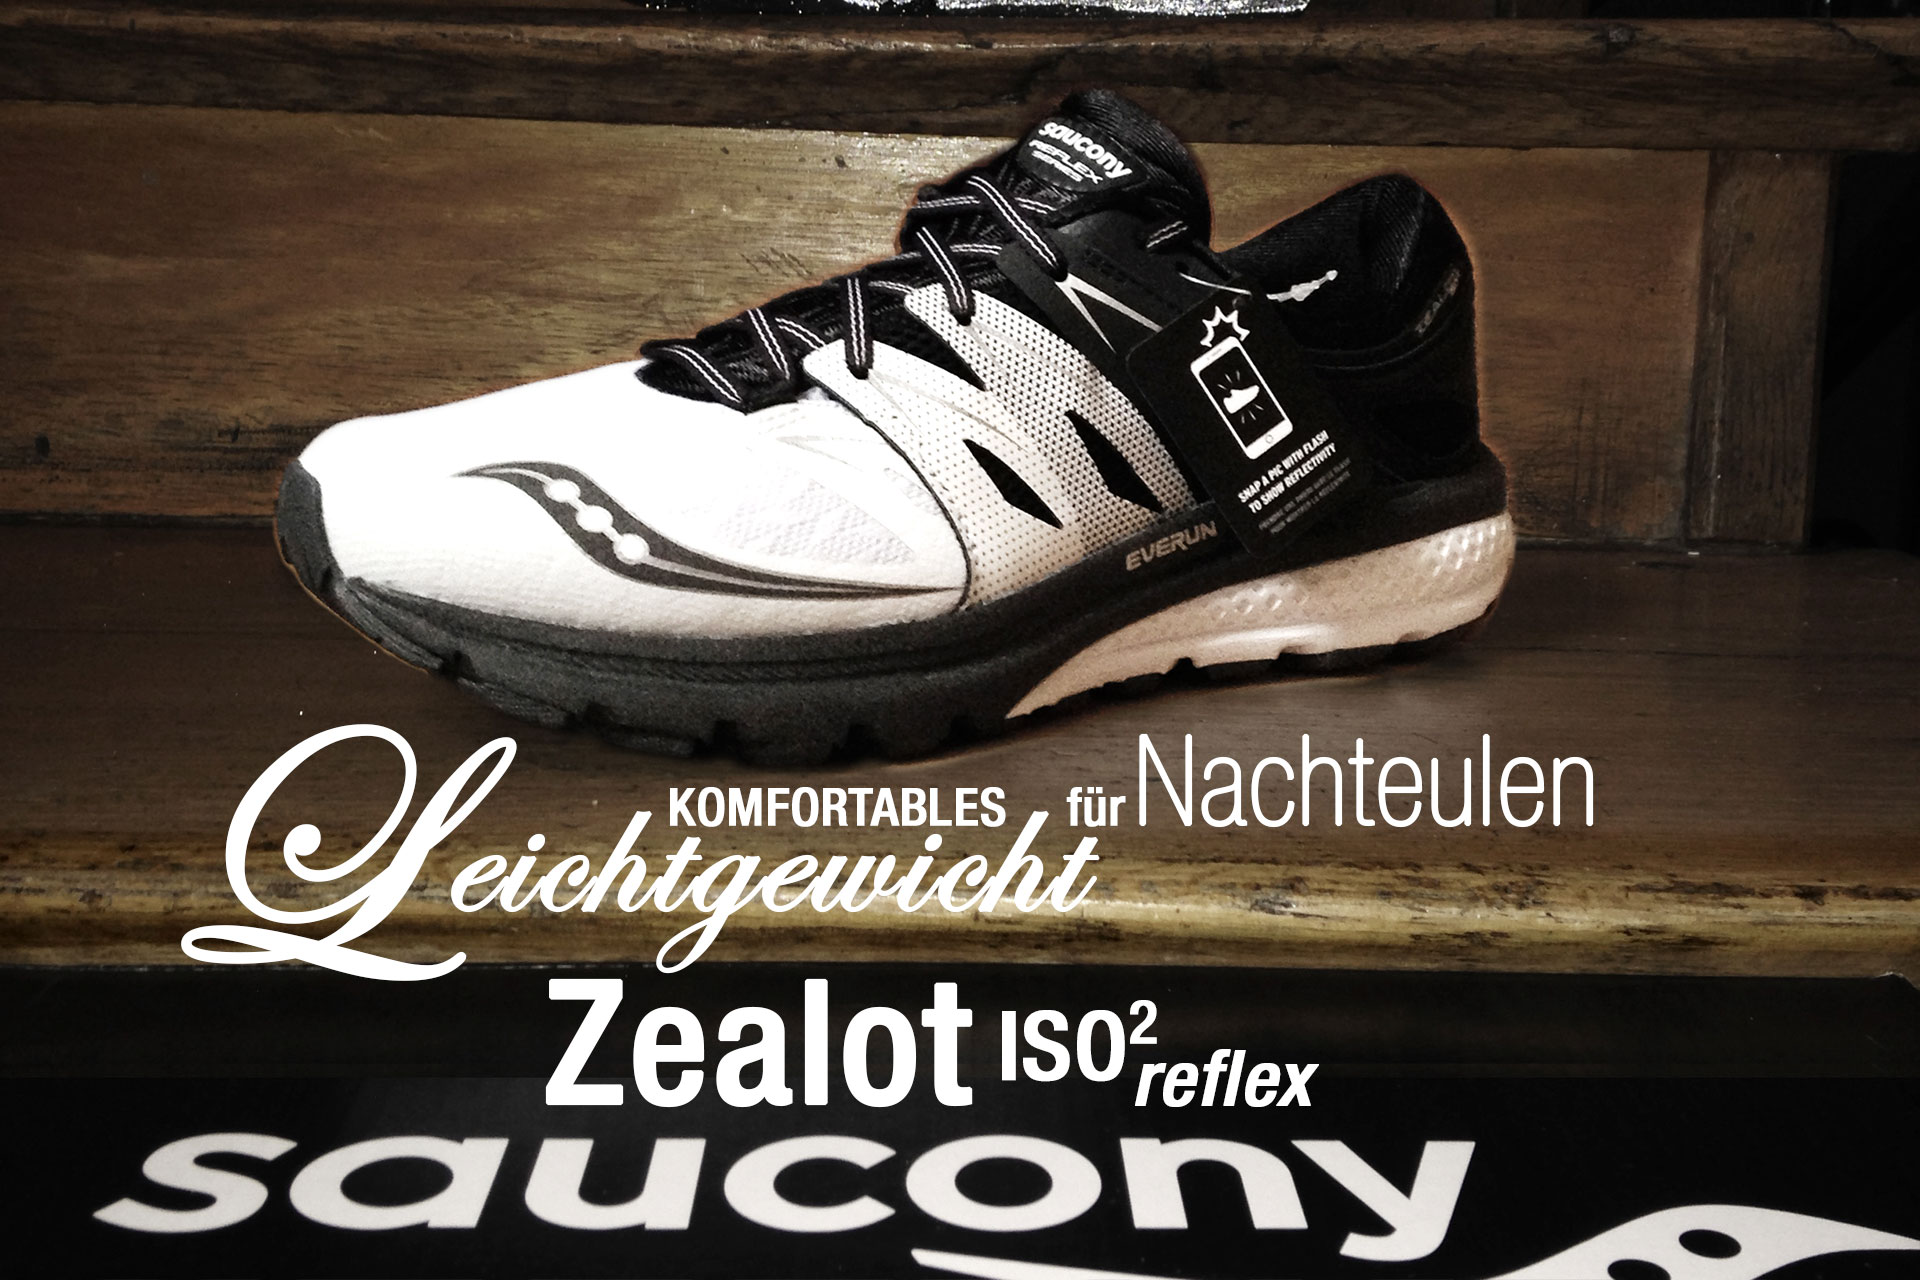 SAUCONY Zealot ISO 2 Reflex: Komfortables Leichtgewicht für Nachteulen / TITEL Eleganter Lightweight Trainer in Black-and-White mit optischem Highlight für die Dunkelheit